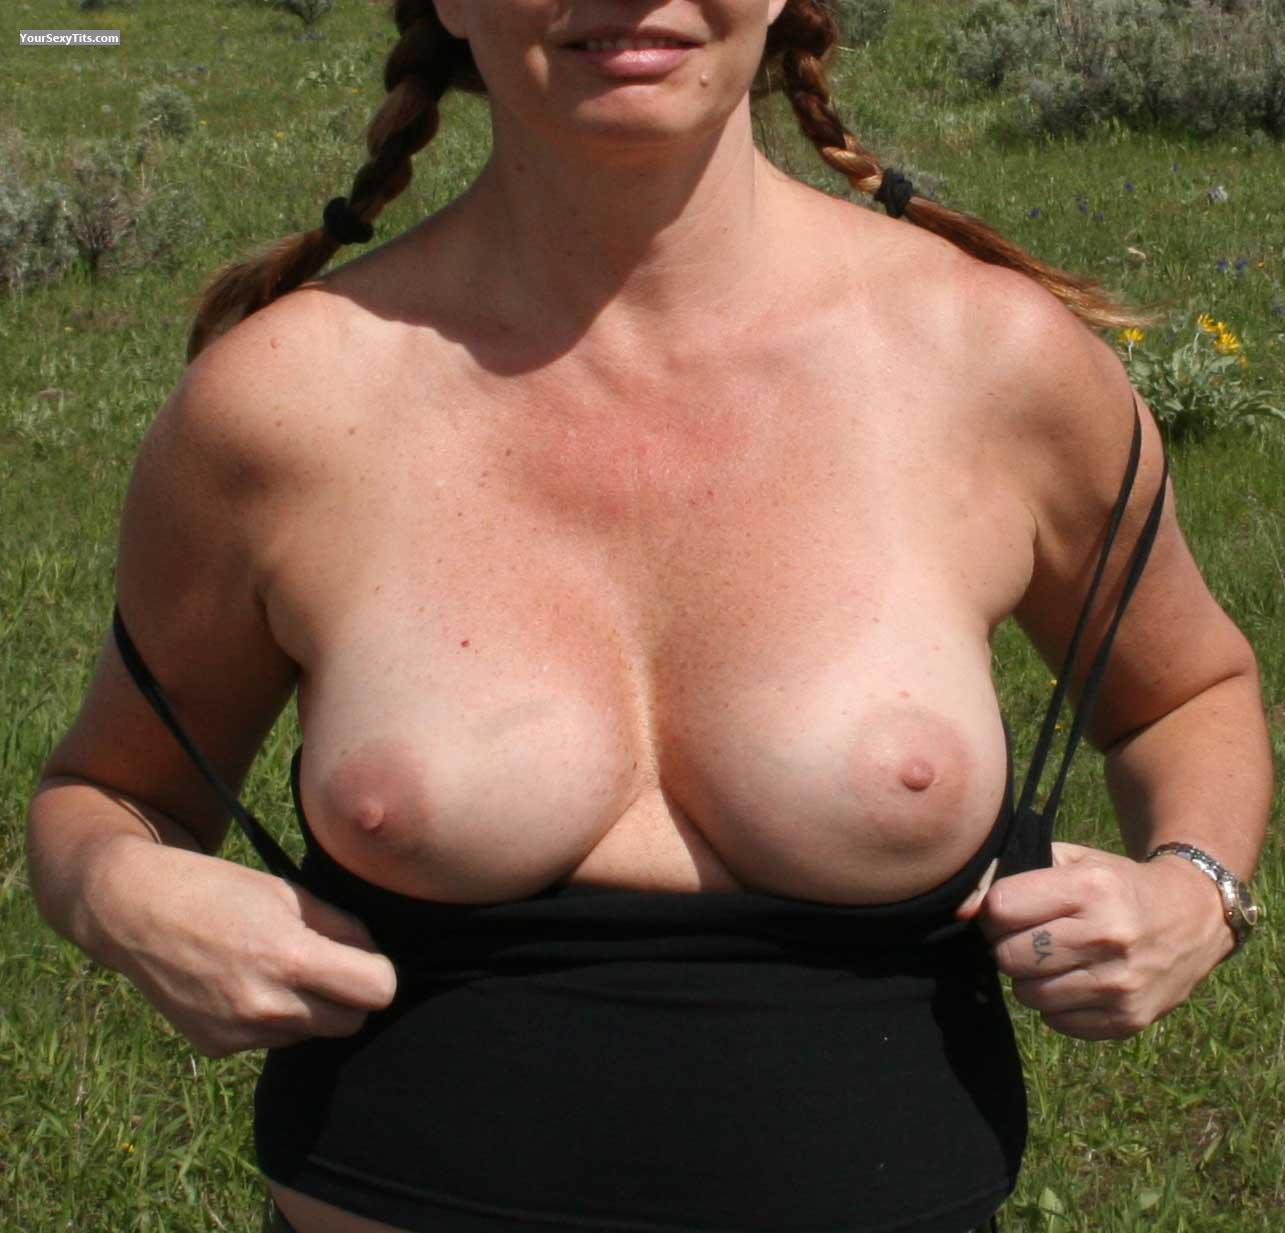 Tit Flash: Medium Tits - D from United States